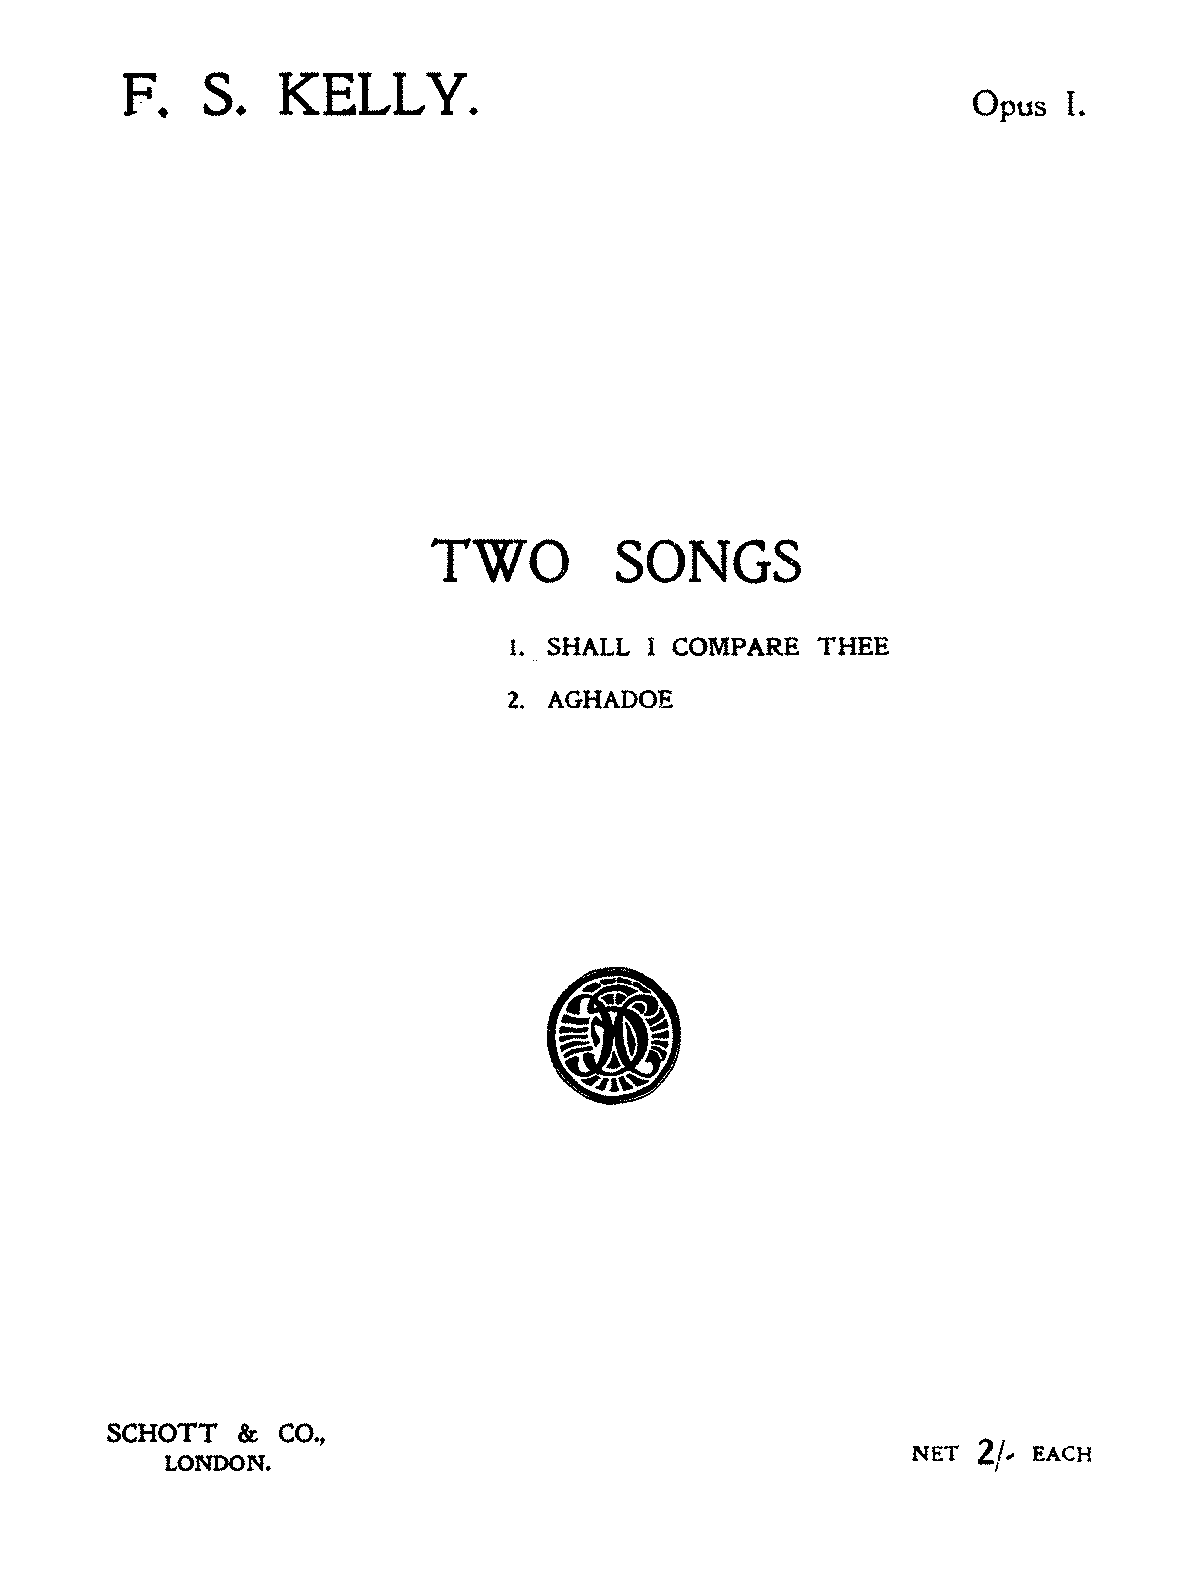 PMLP631889-FSKelly 2 Songs, Op.1 No.1.pdf